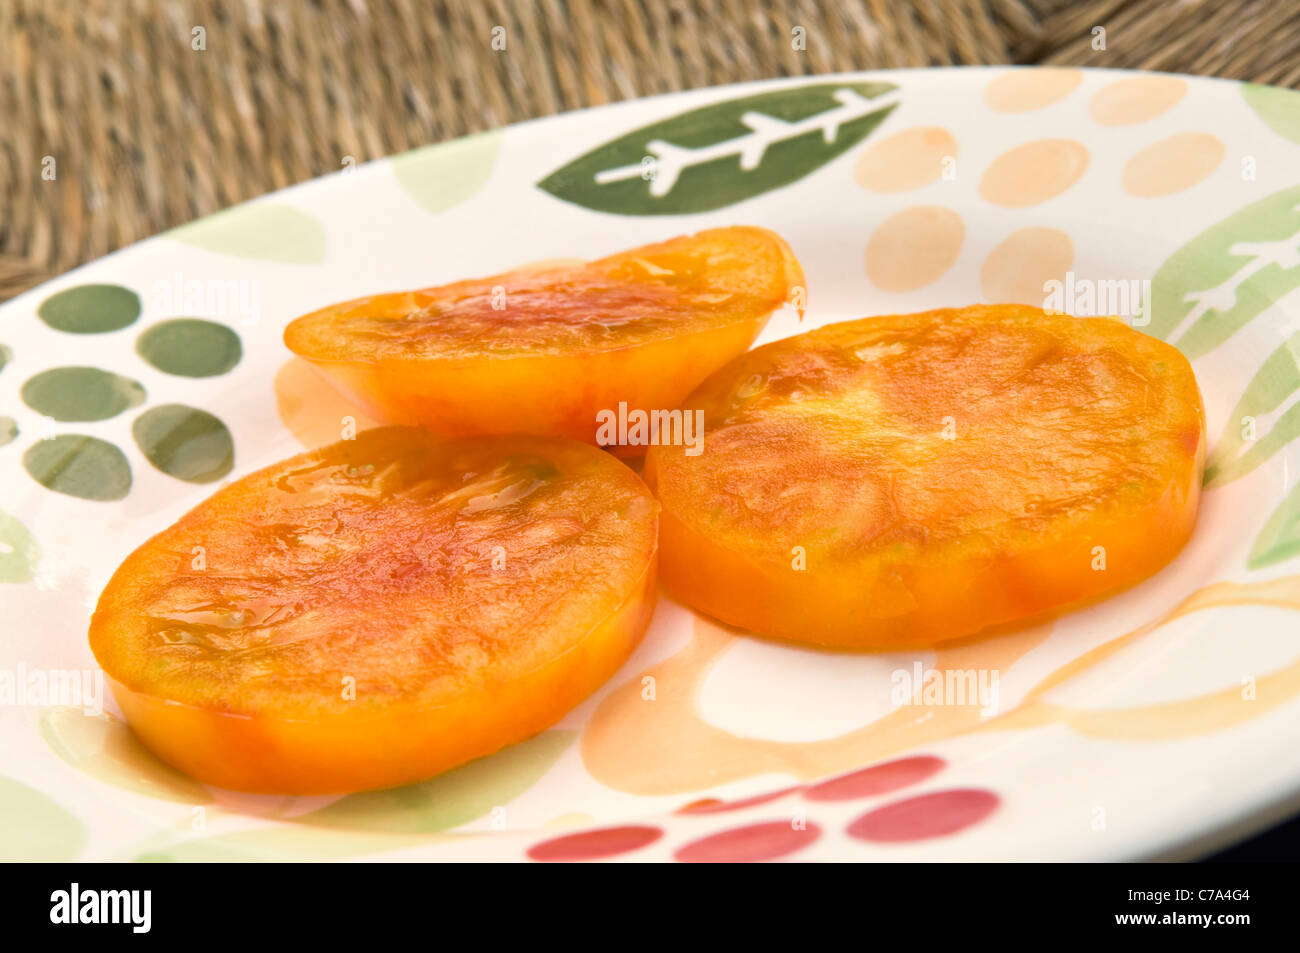 Slices of Old German Heirloom Tomato - Stock Image